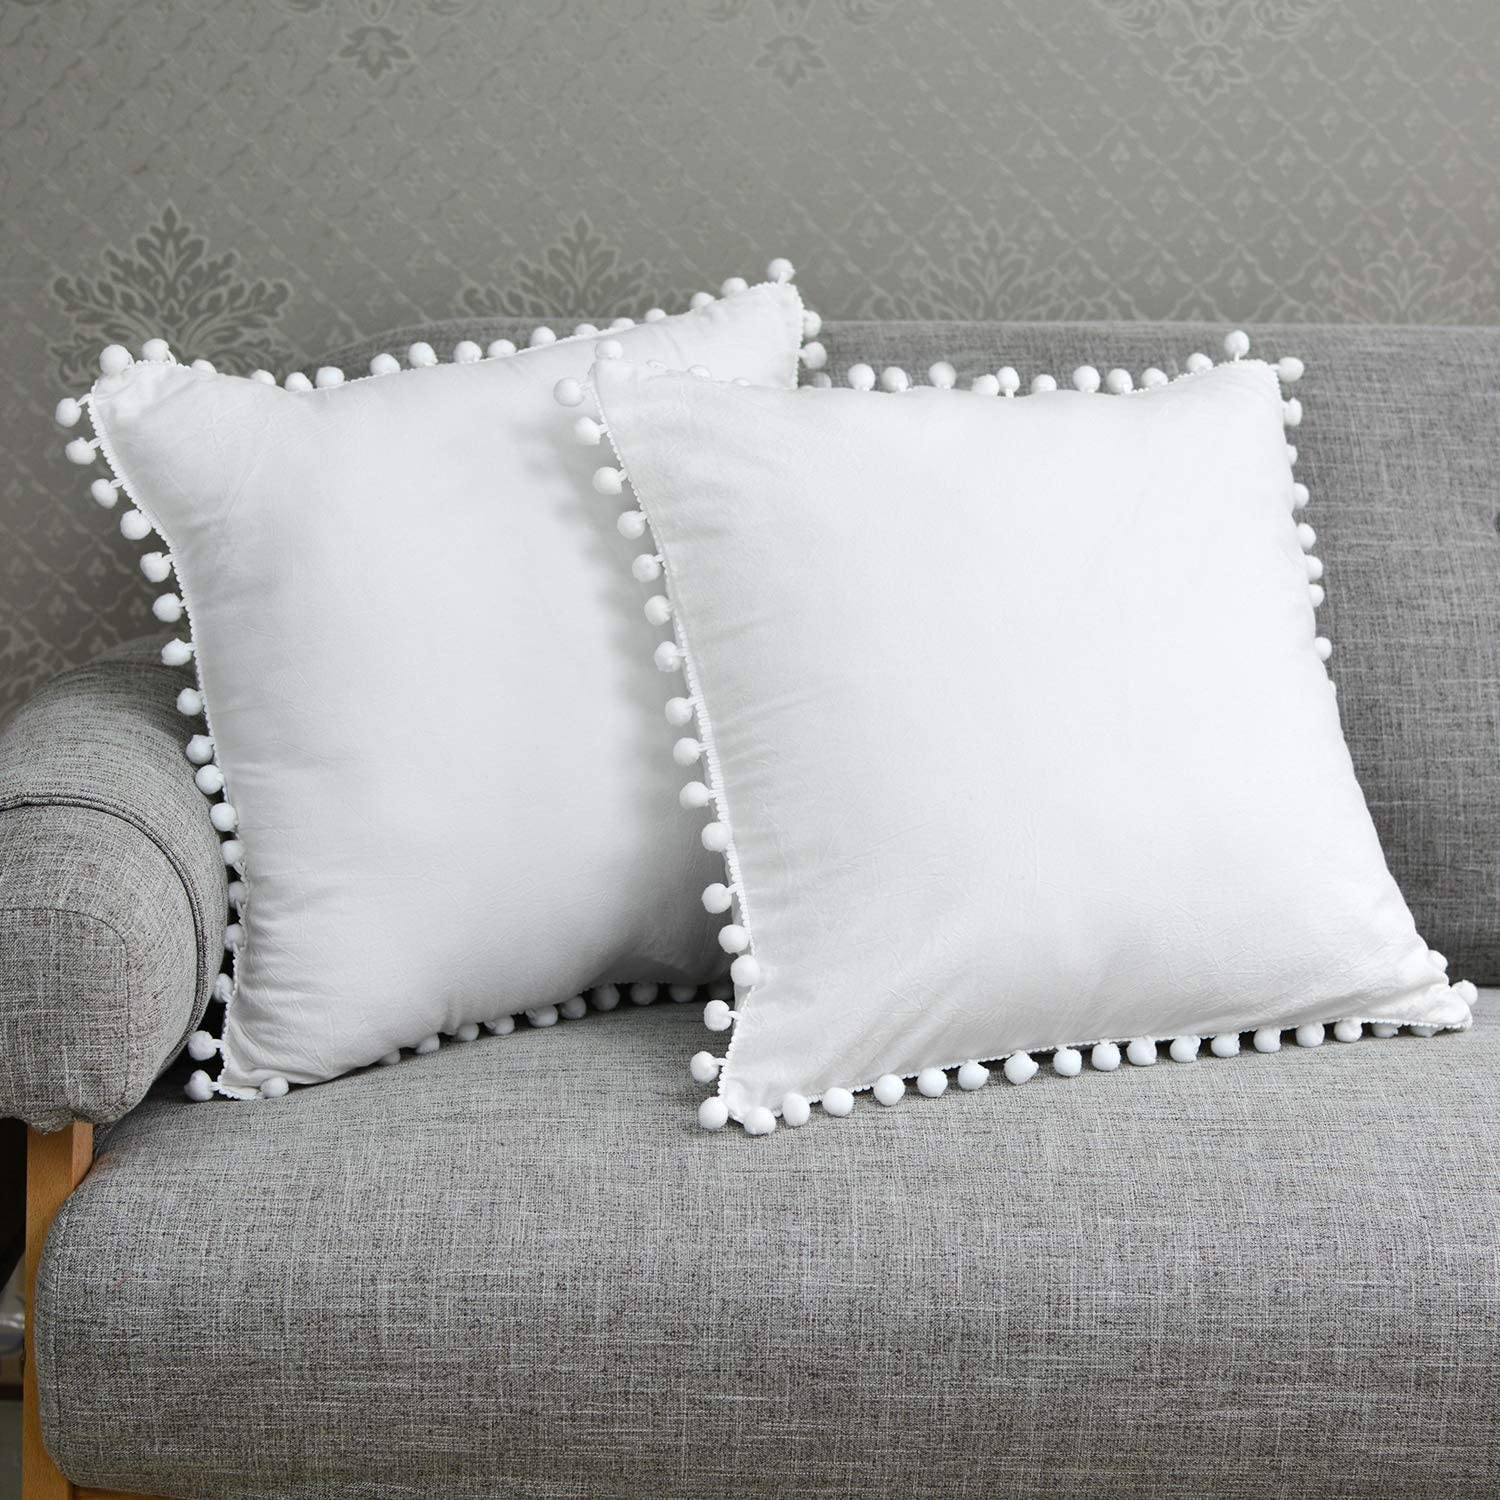 2Pcs Solid White Decorative Pillow Covers 22x22 Square Boho Style Pompom Edged Design Cushion Covers